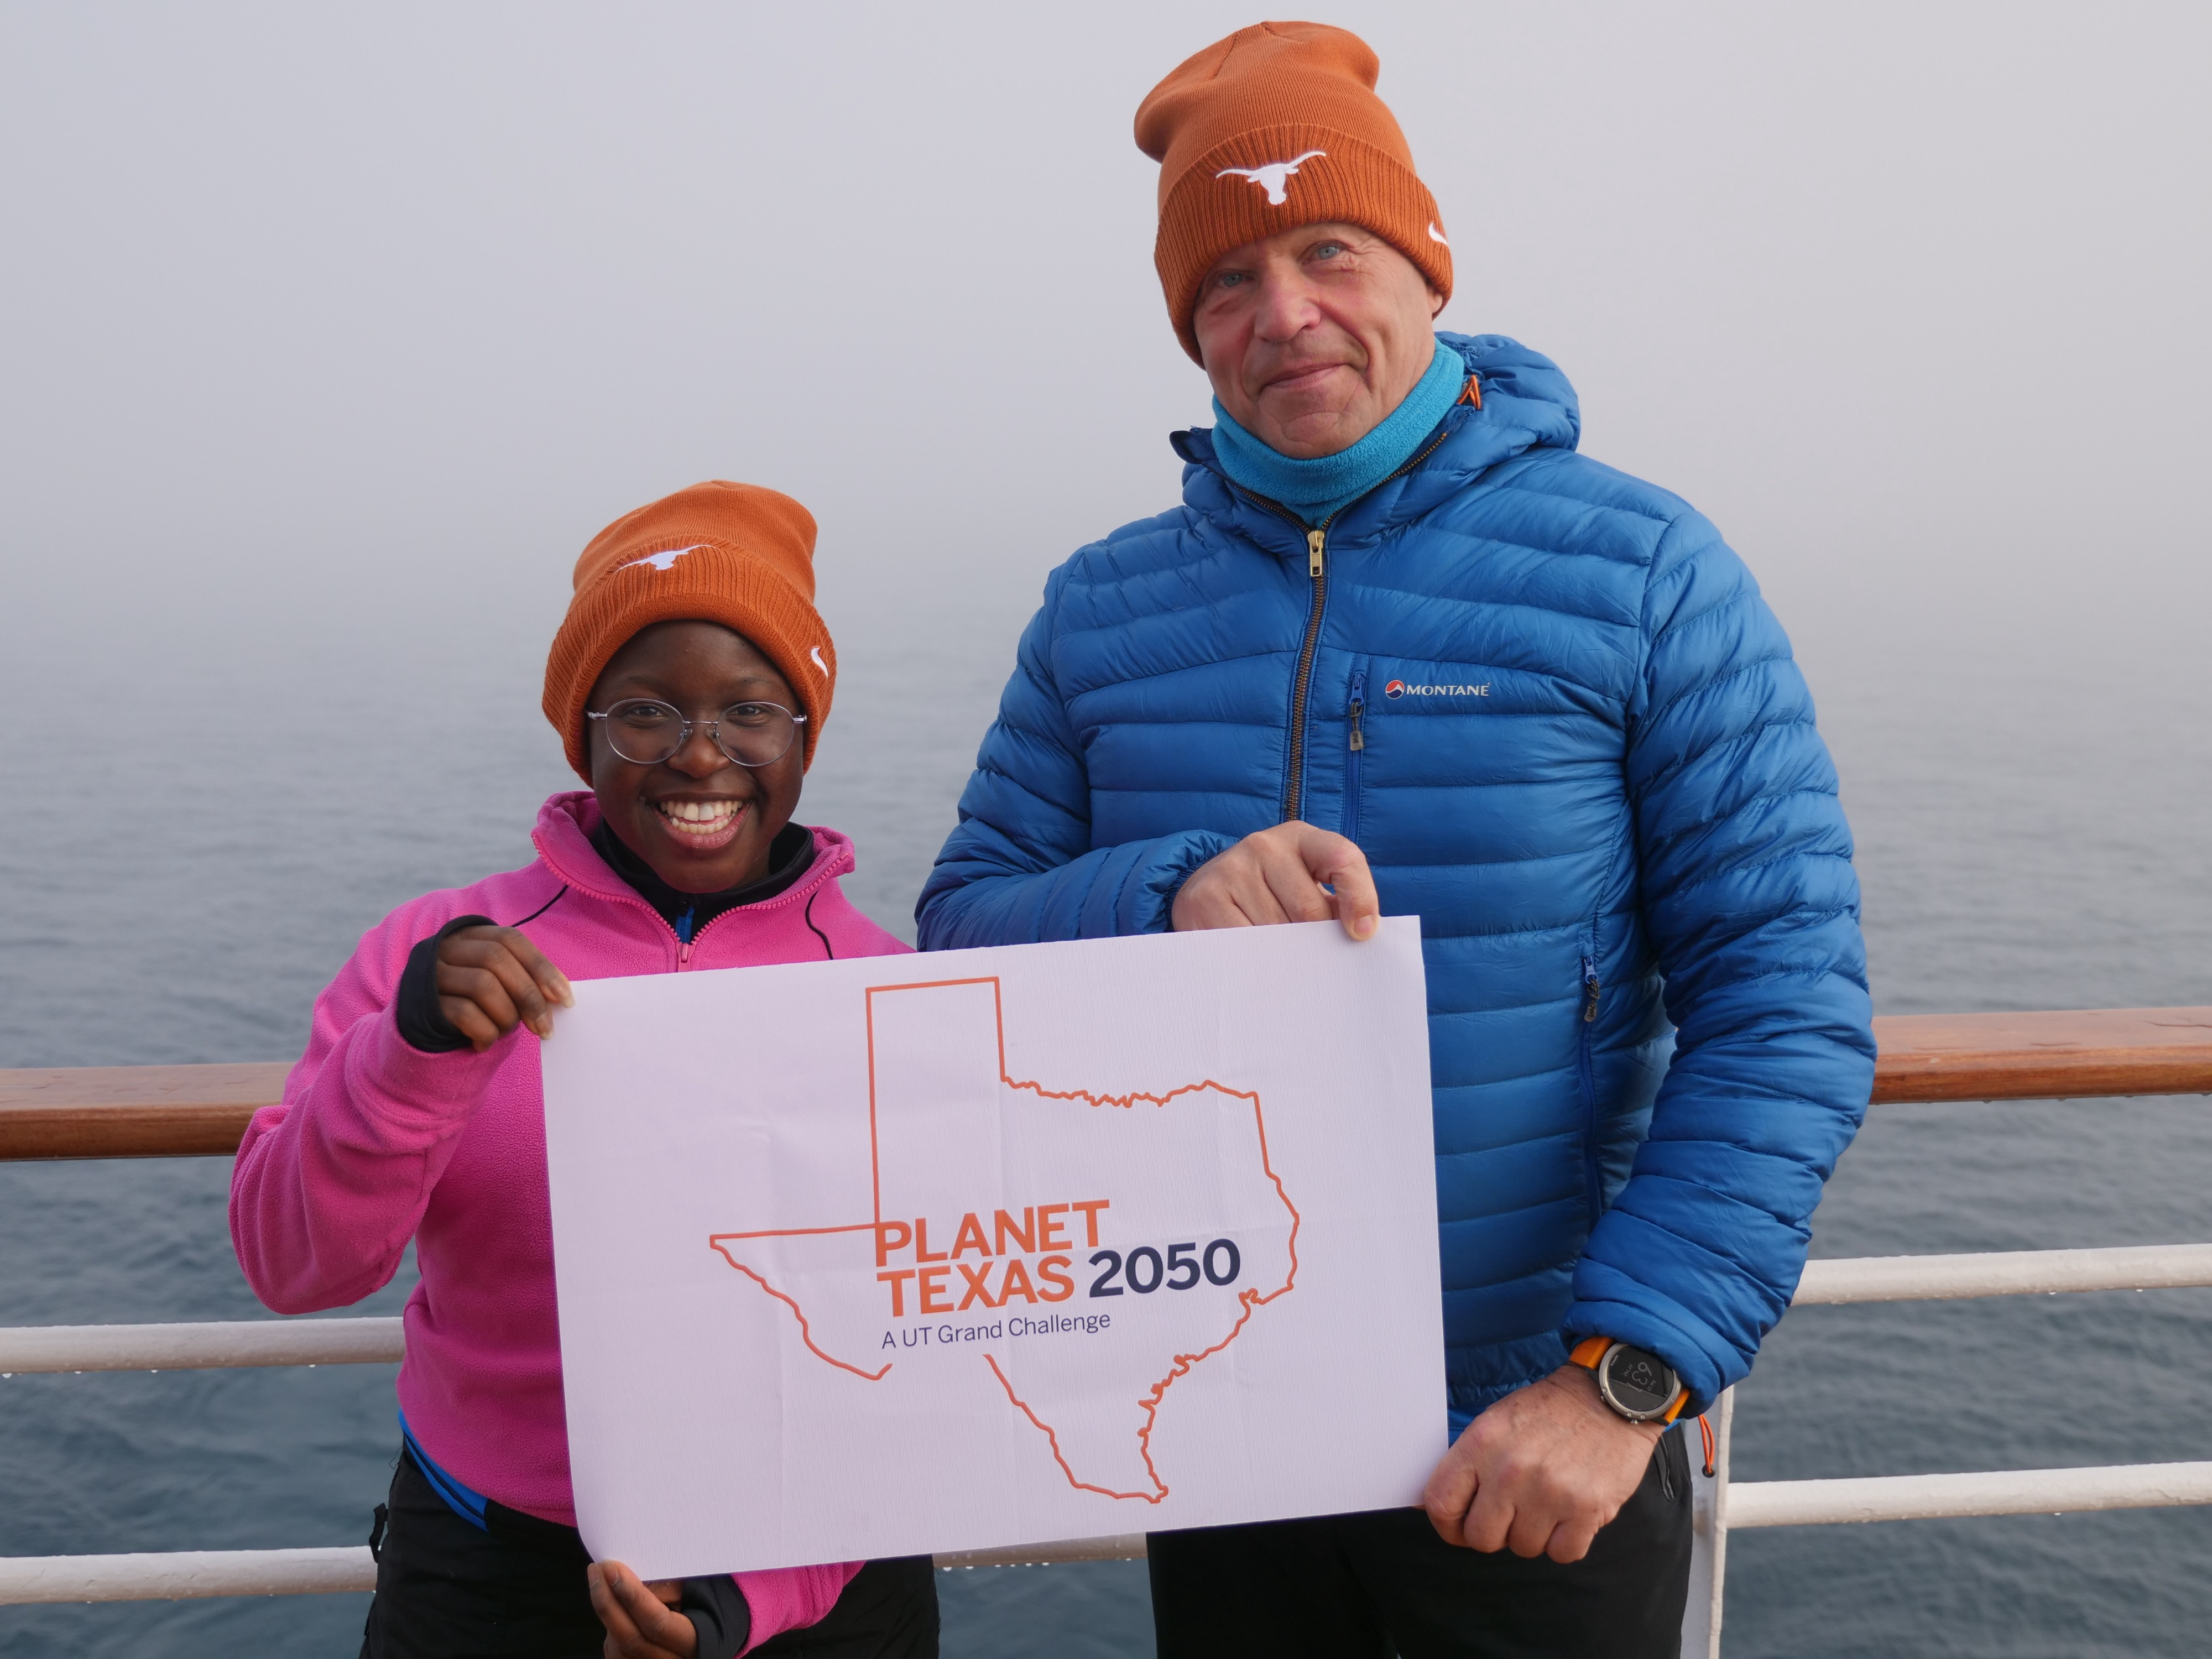 UT student Seyi Odufuye and explorer Robert Swan wear Longhorn hats and stand on the ship holding a Planet Texas 2050 flag.